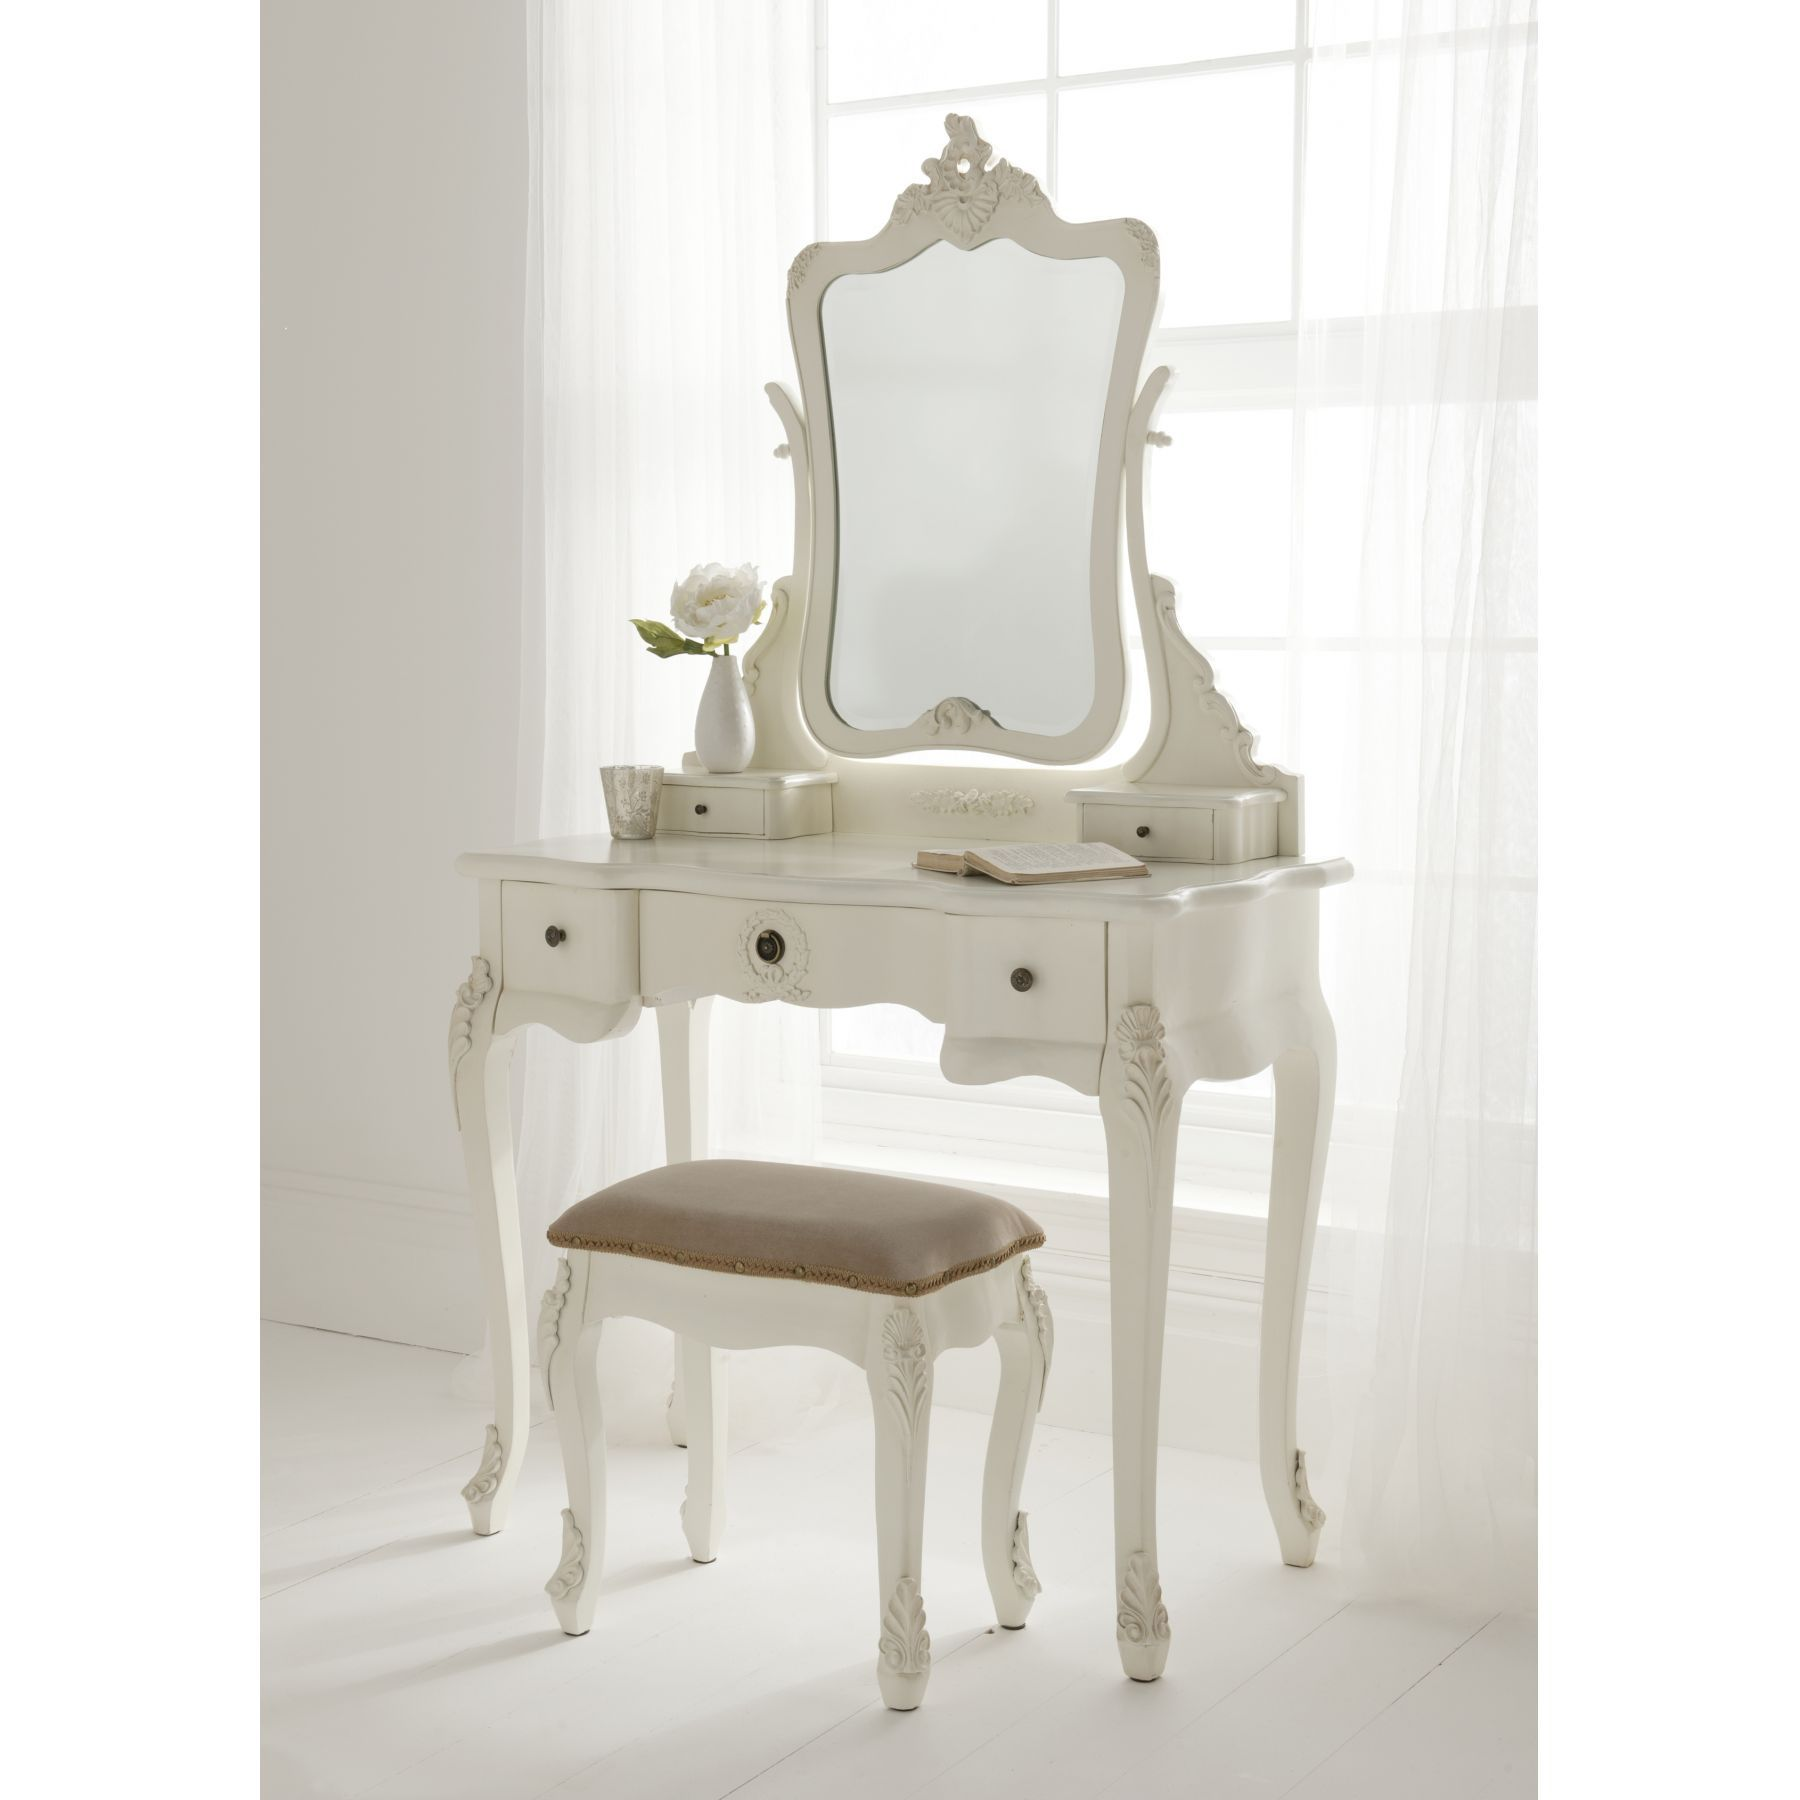 Bedroom dressing table decorating ideas - Decoration Ideas Beautiful White Dressing Table With Swivel Adjustable Mirror And Cozy Small Bench Exotic Bedroom Dressing Table Ideas